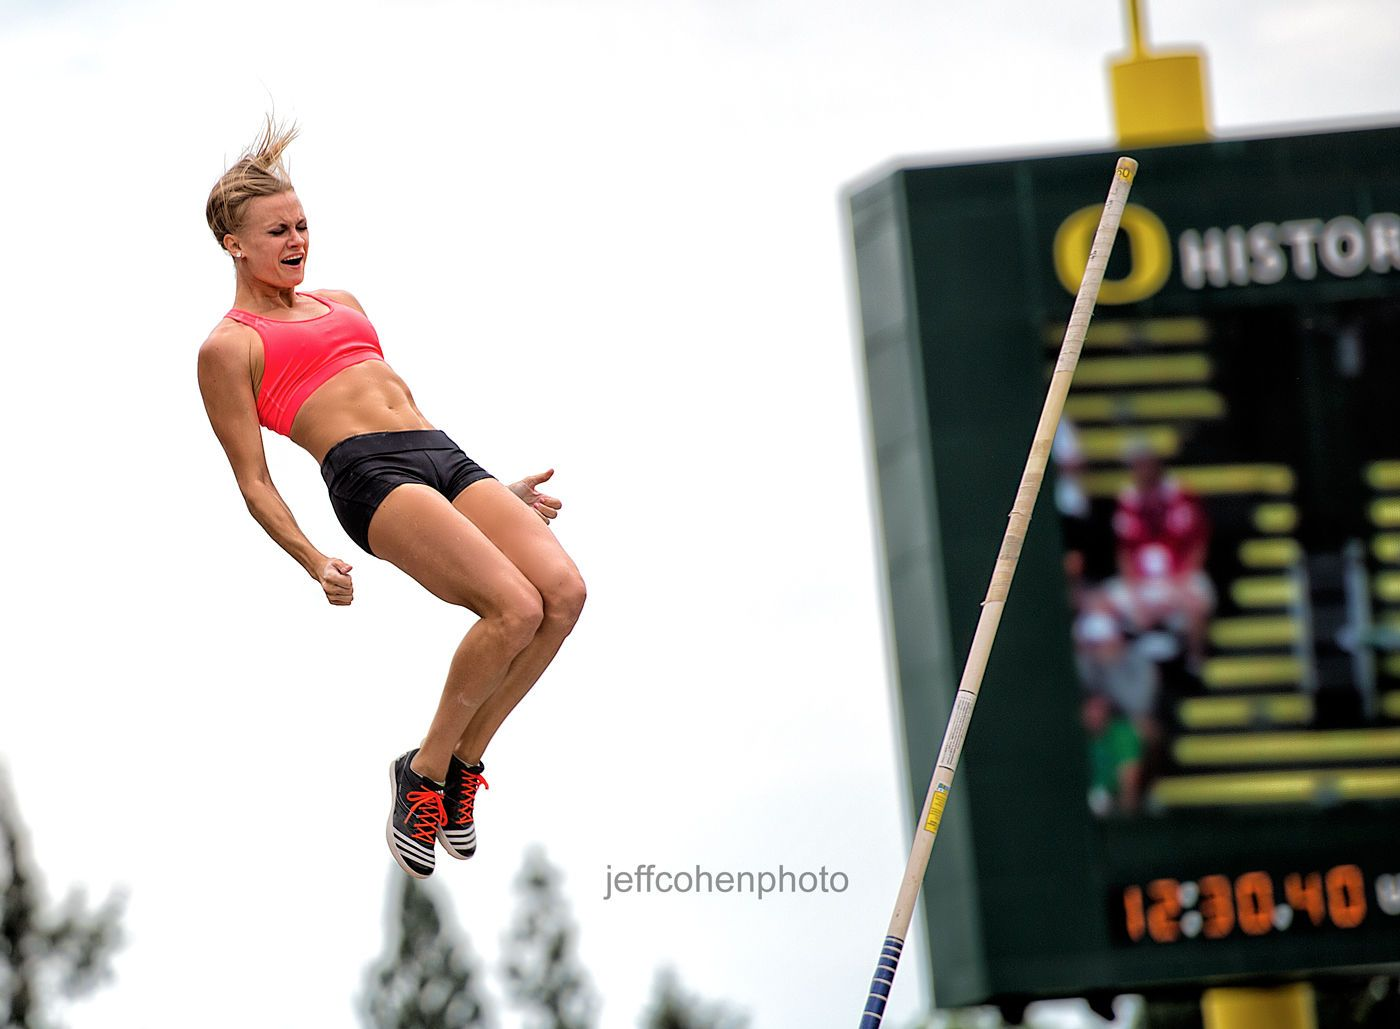 1r2015_usaoutdoors_day_4_katie_nageotte_pv_jeff_cohen_1639__web.jpg